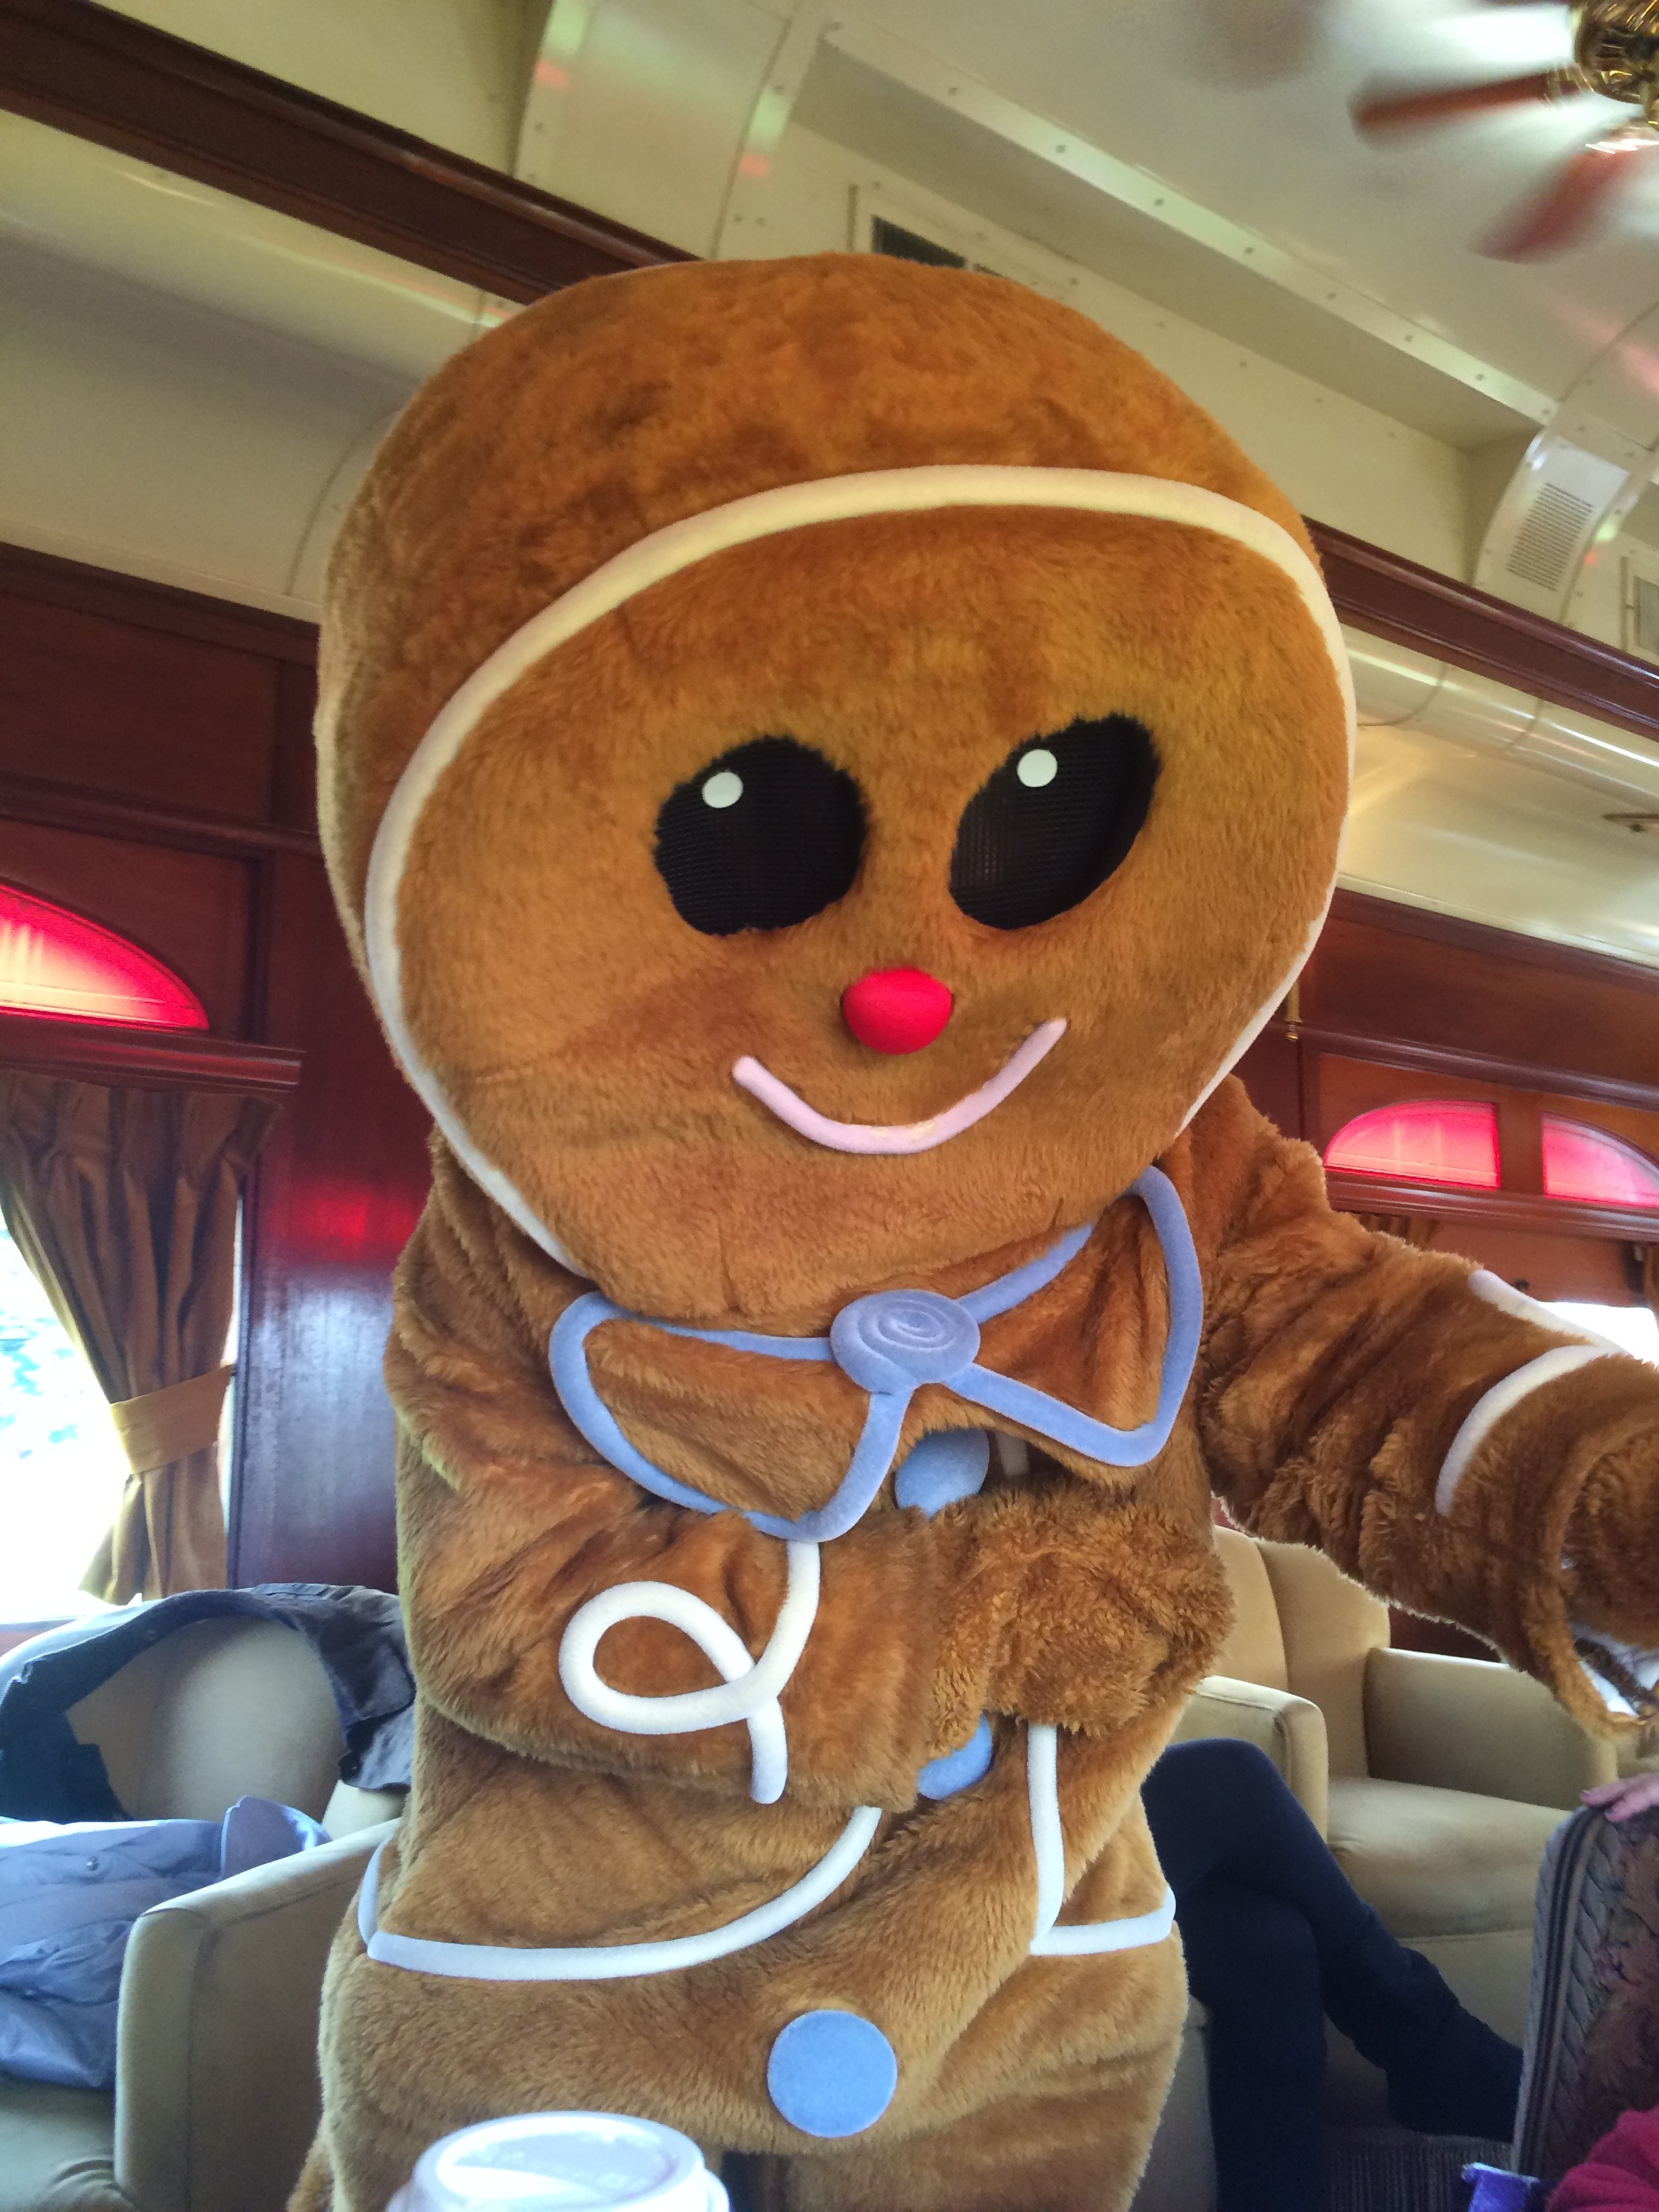 Photo by Steve Villano, taken aboard Santa Wine Train, Napa Valley, where Gingerbread People of Color are welcome...